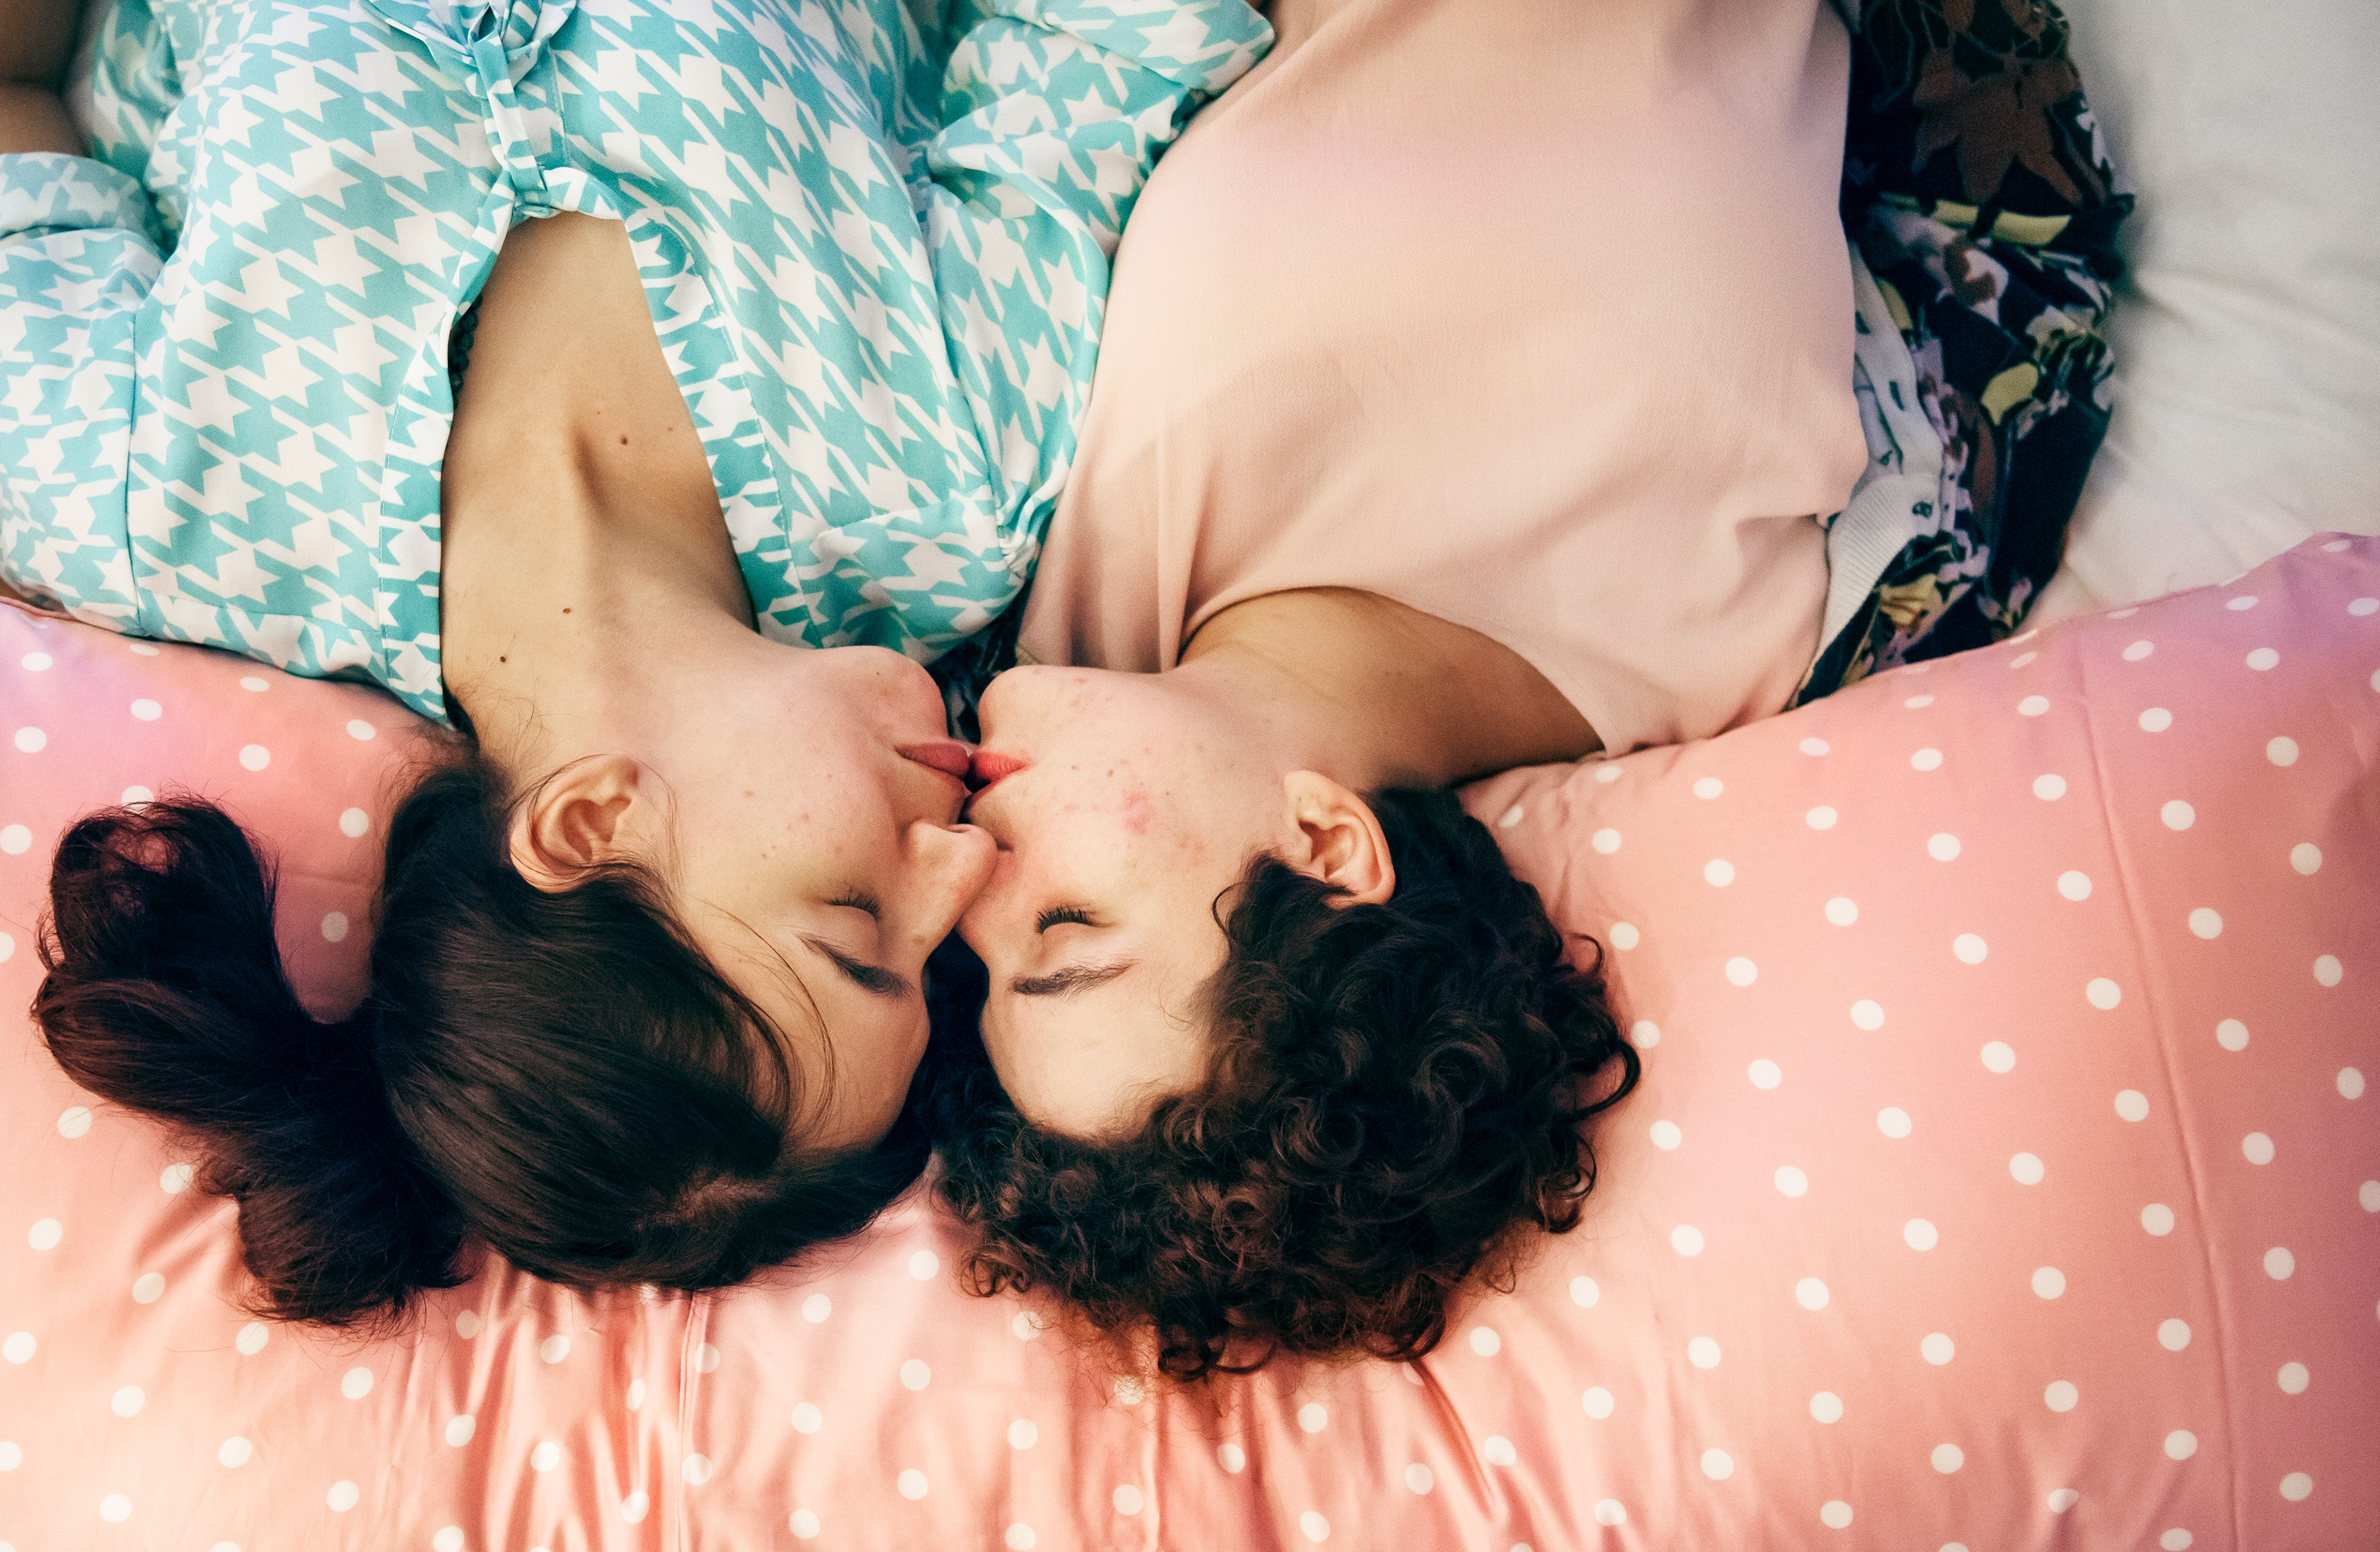 Two girls in love kissing.